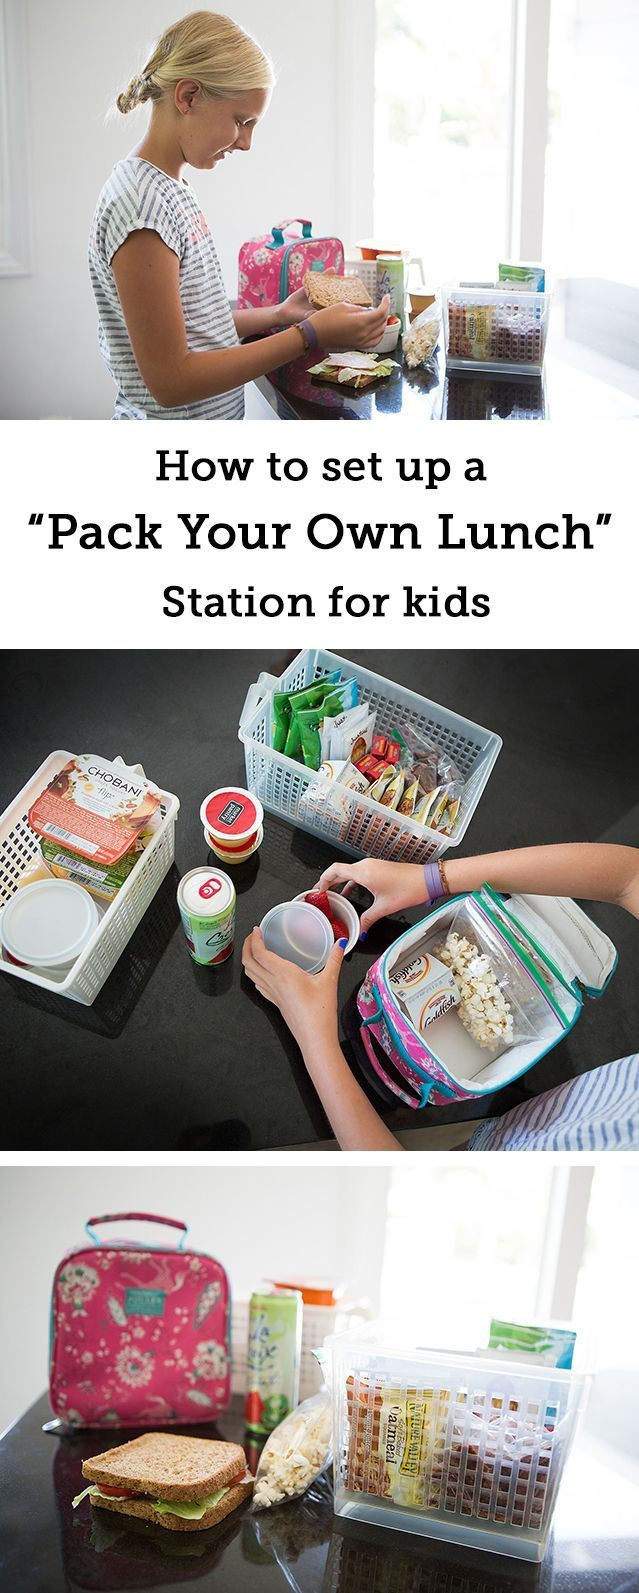 1000 images about lunch box ideas on pinterest bento lunch box jokes and kid lunches. Black Bedroom Furniture Sets. Home Design Ideas